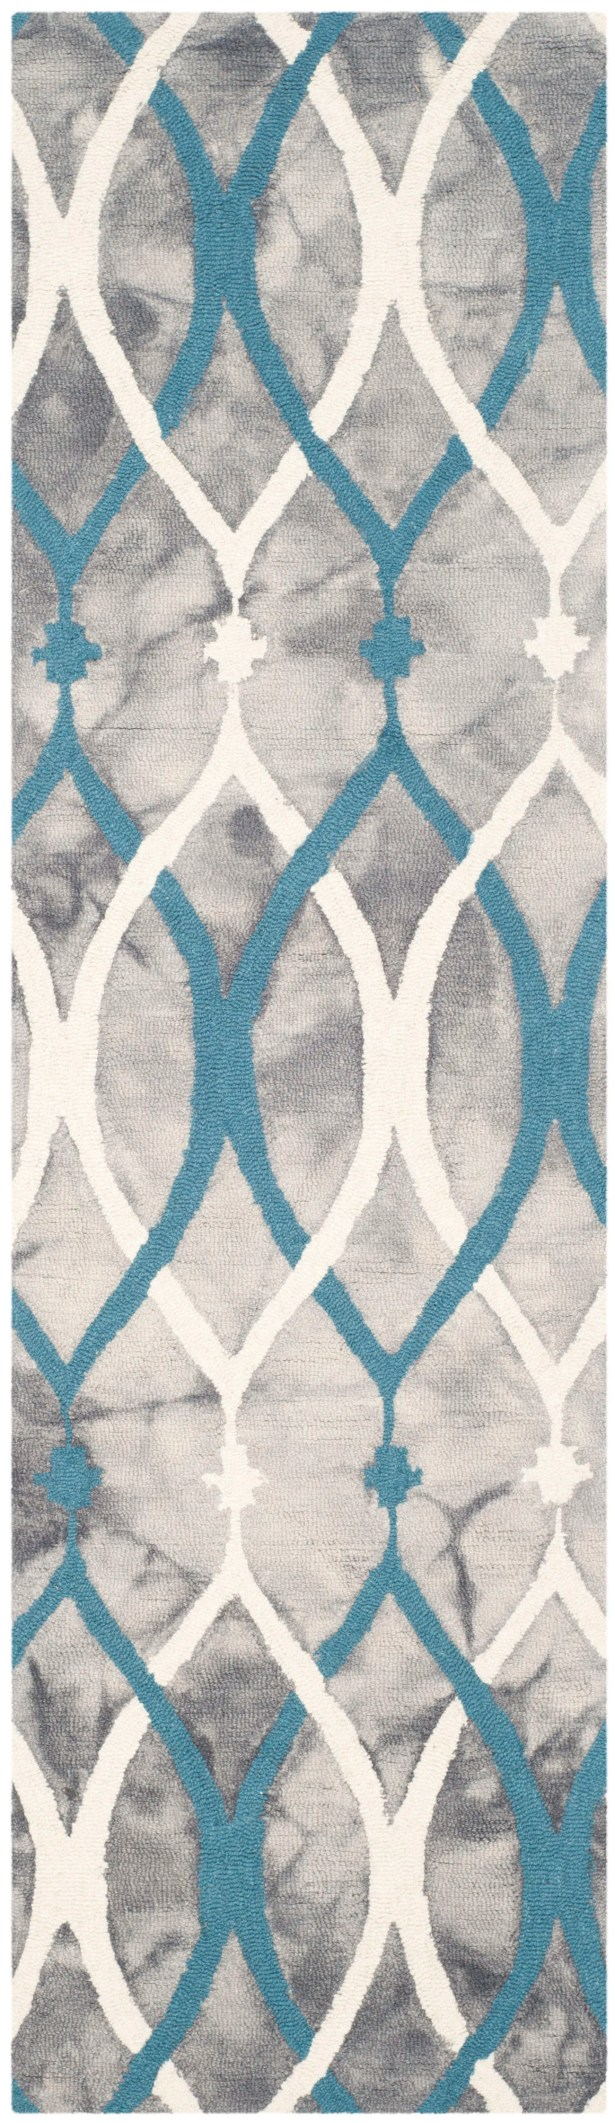 Clements Hand-Tufted Area Rug Rug Size: Runner 2'3